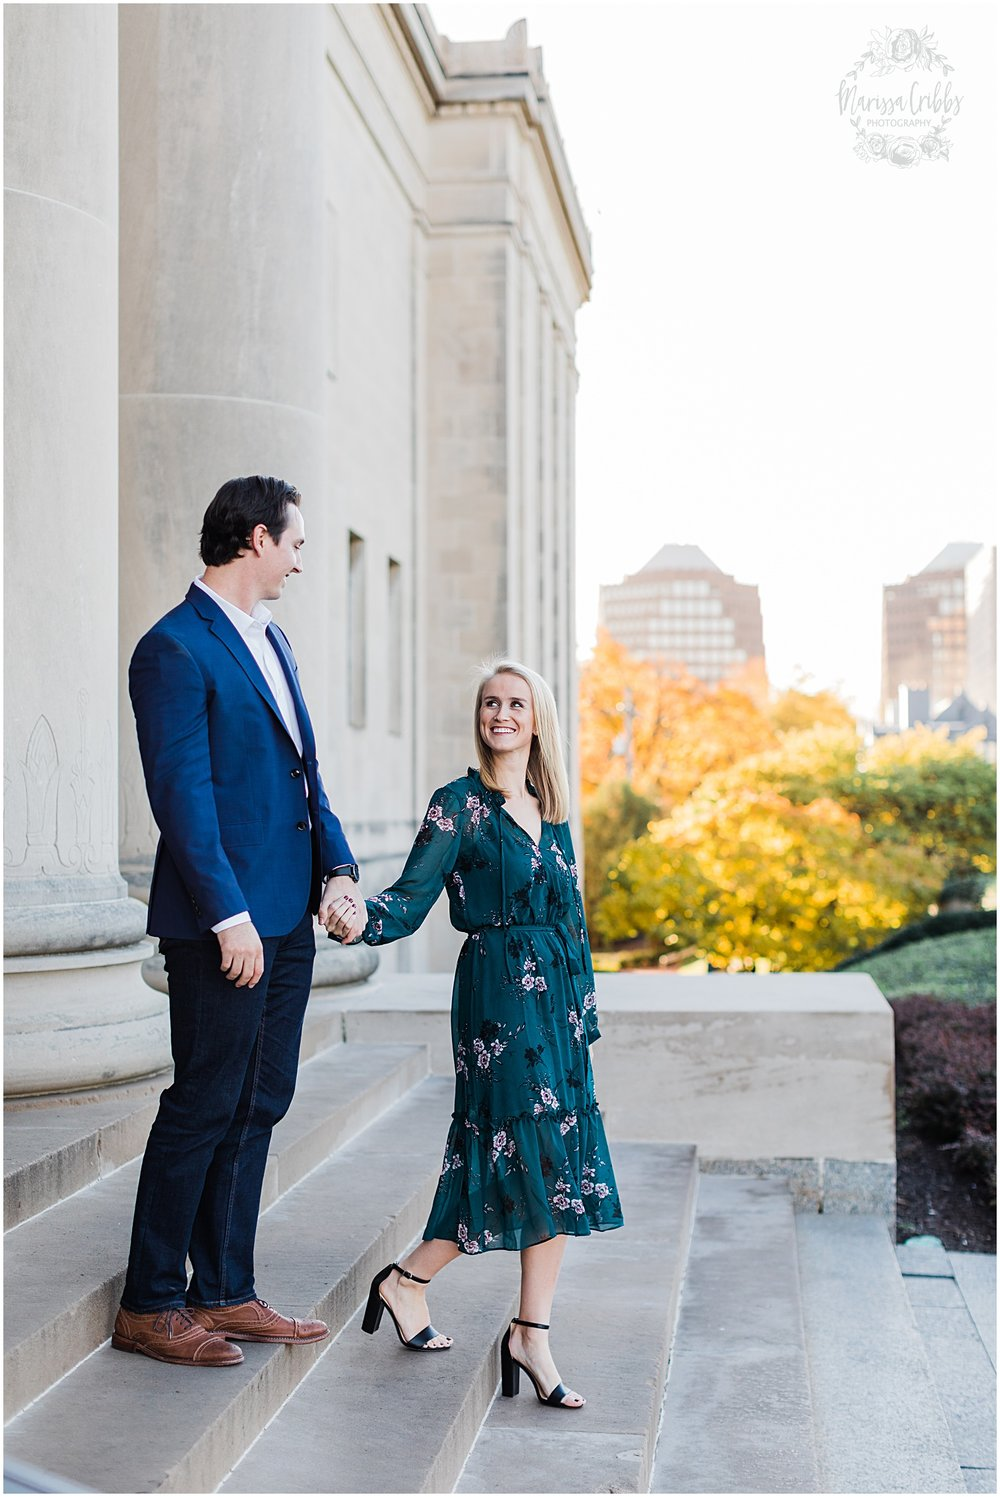 HALEY & CHASE ENGAGED LOOSE PARK & NELSON ATKINS | FALL ENGAGEMENT PHOTOS | MARISSA CRIBBS PHOTOGRAPHY_6859.jpg